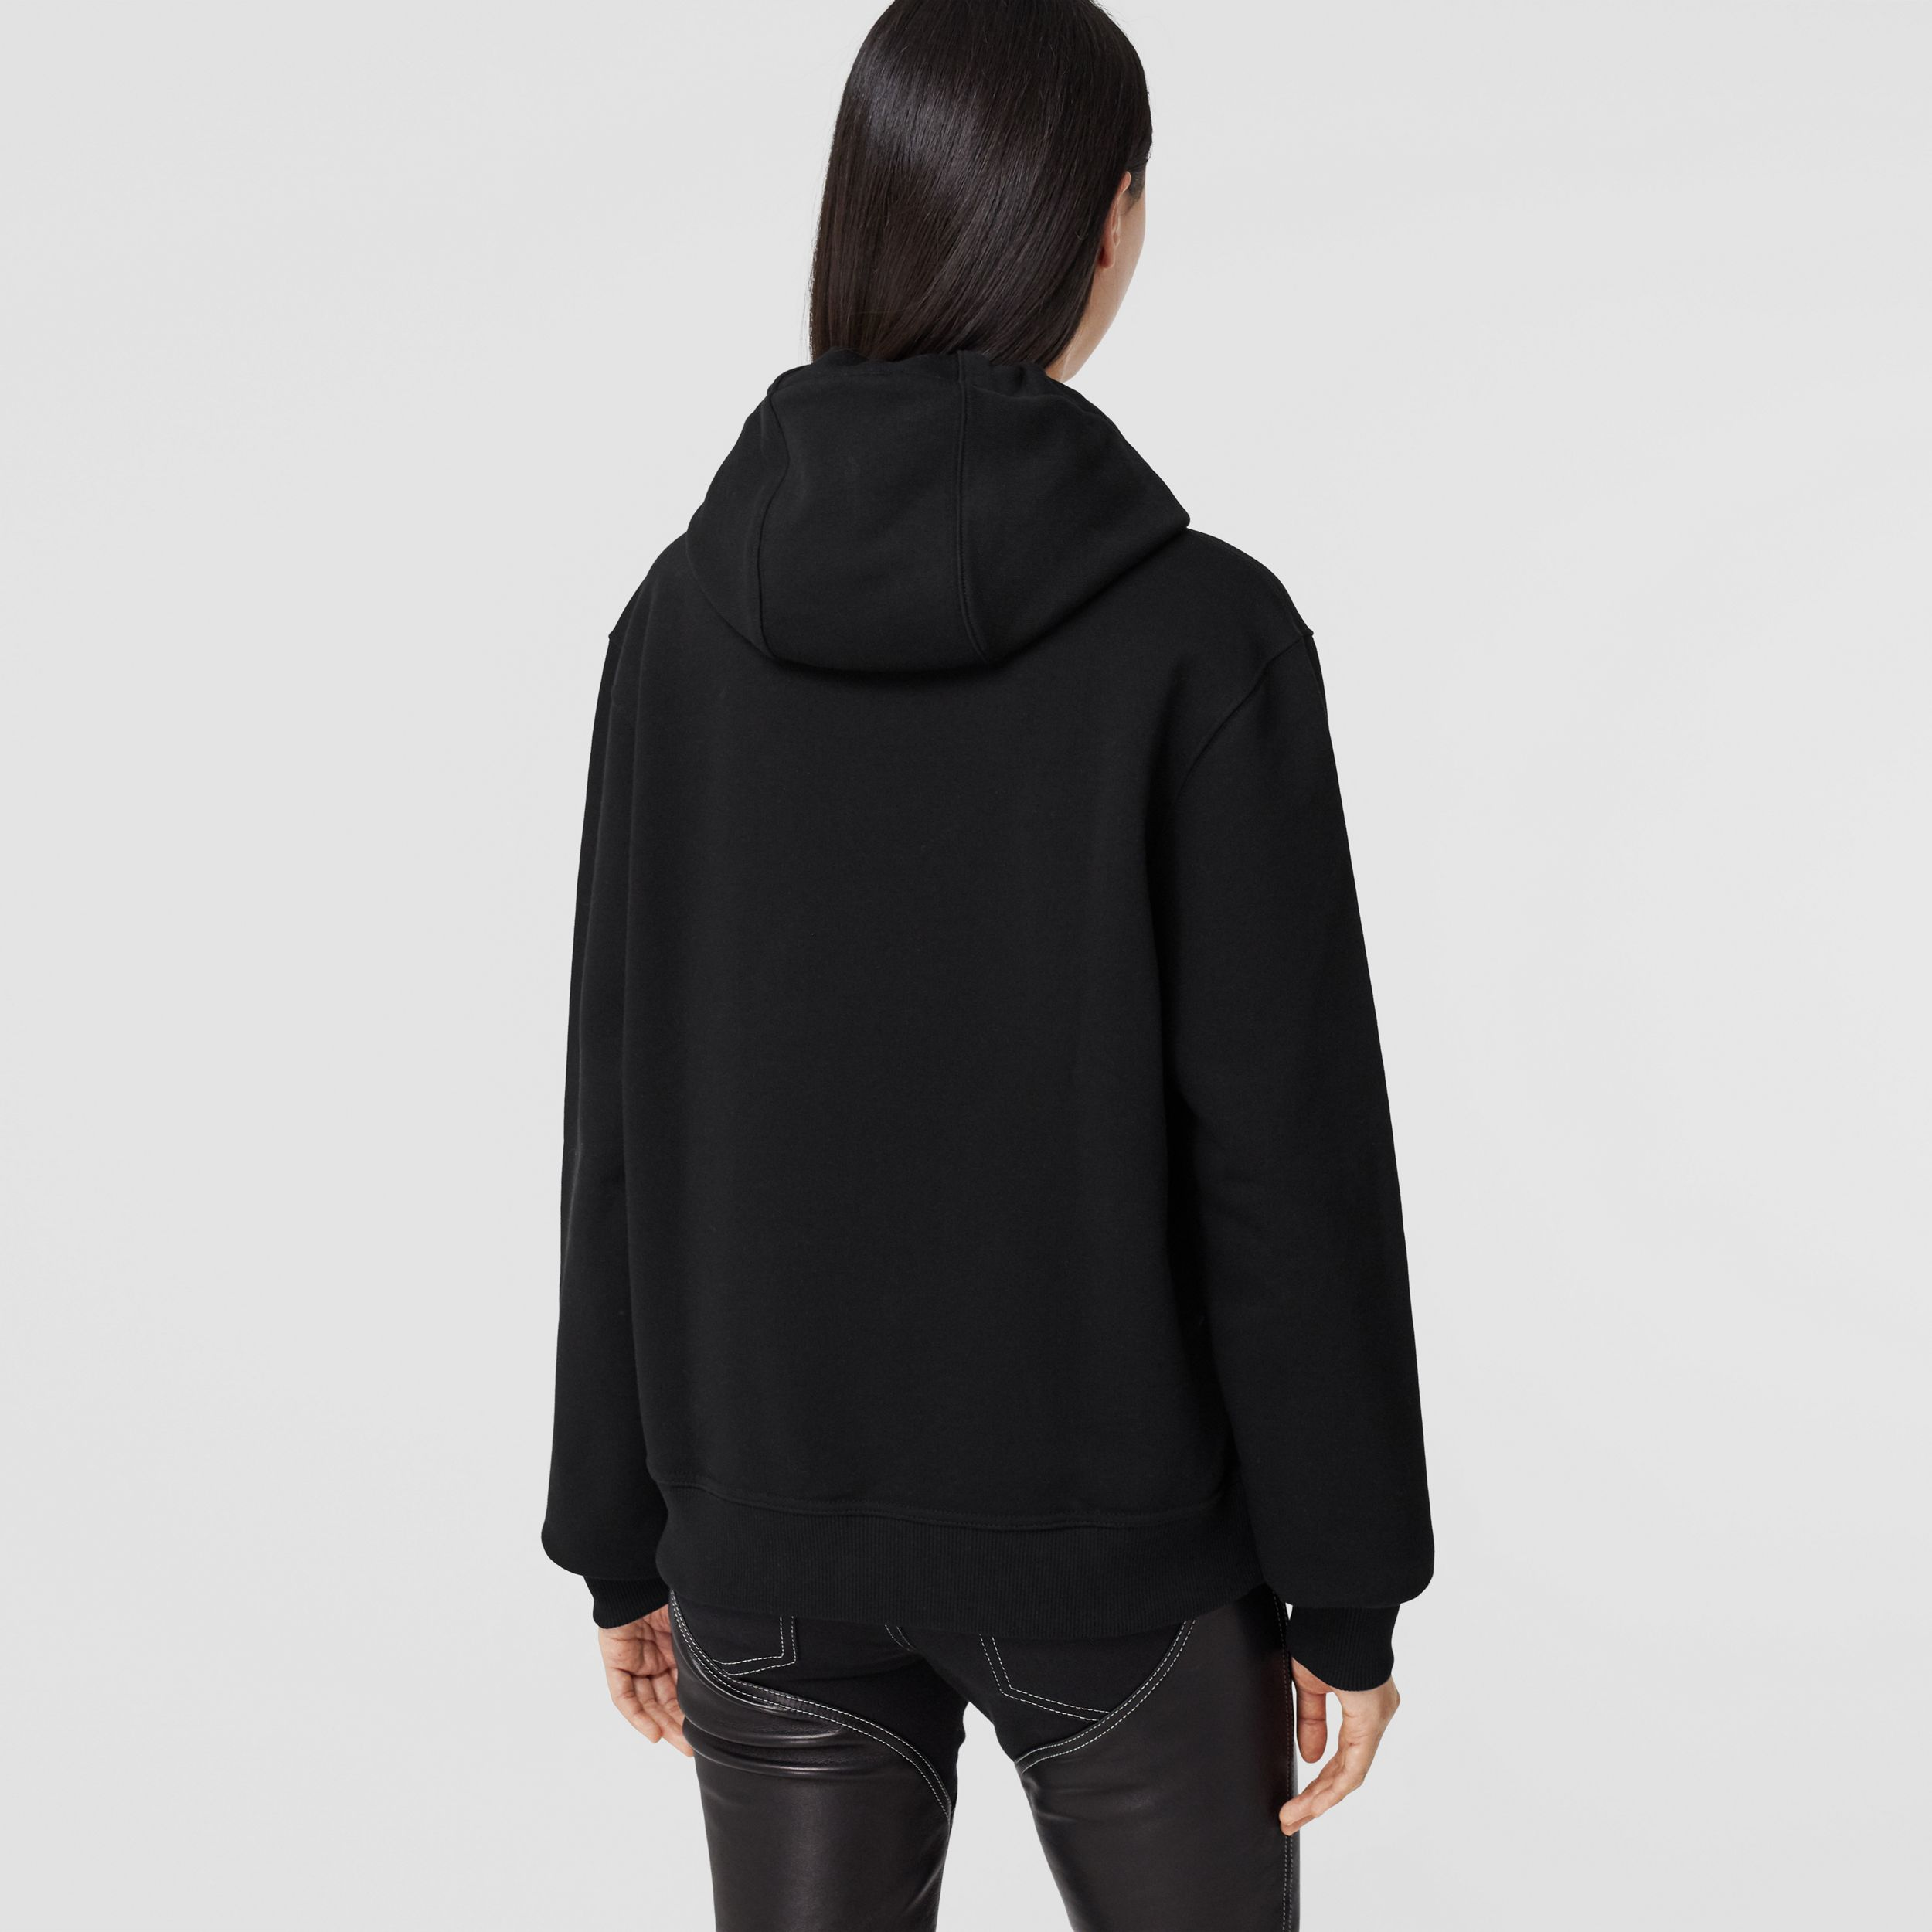 Shark Print Cotton Oversized Hoodie in Black - Women | Burberry United States - 3